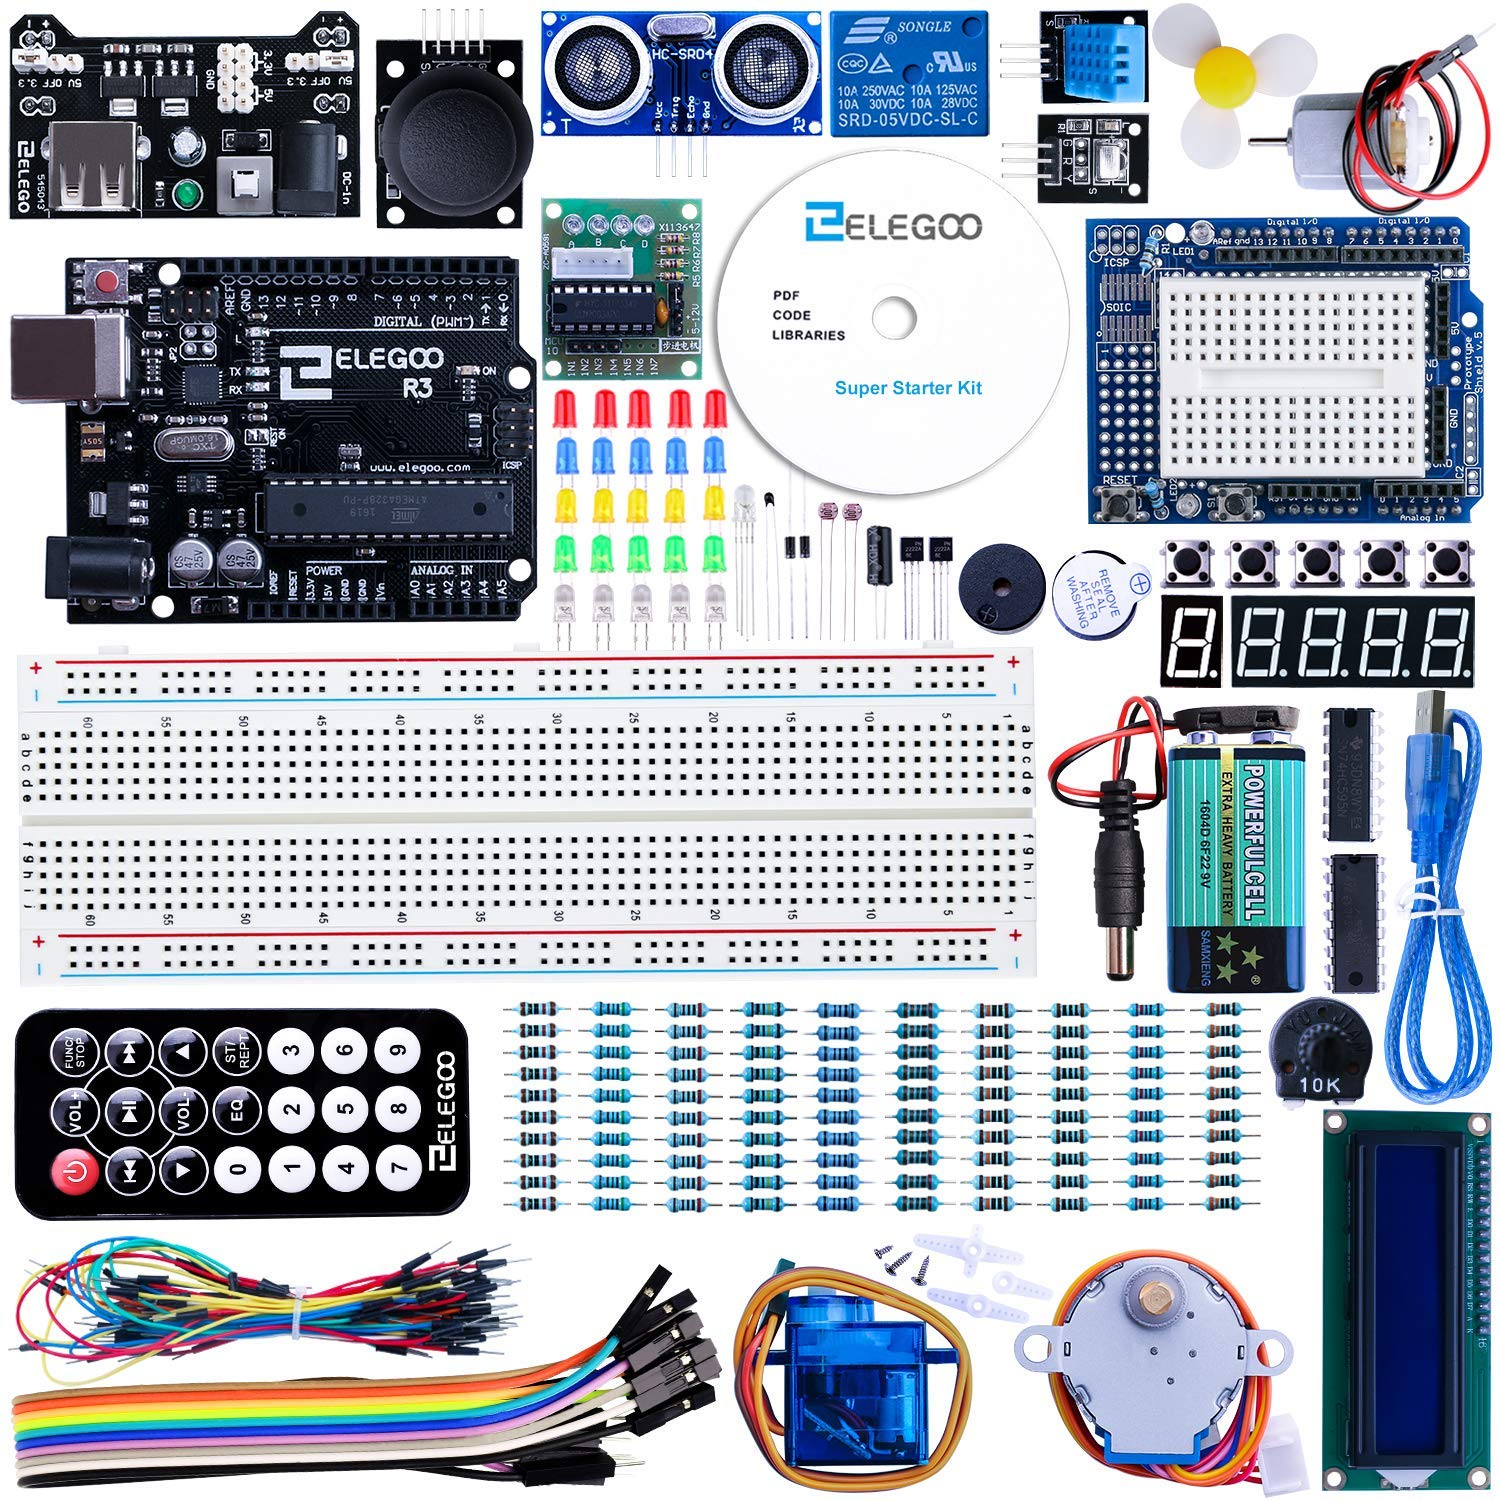 ELEGOO UNO Project Super Starter Kit with Tutorial and UNO R3 Compatible with Arduino IDE by ELEGOO